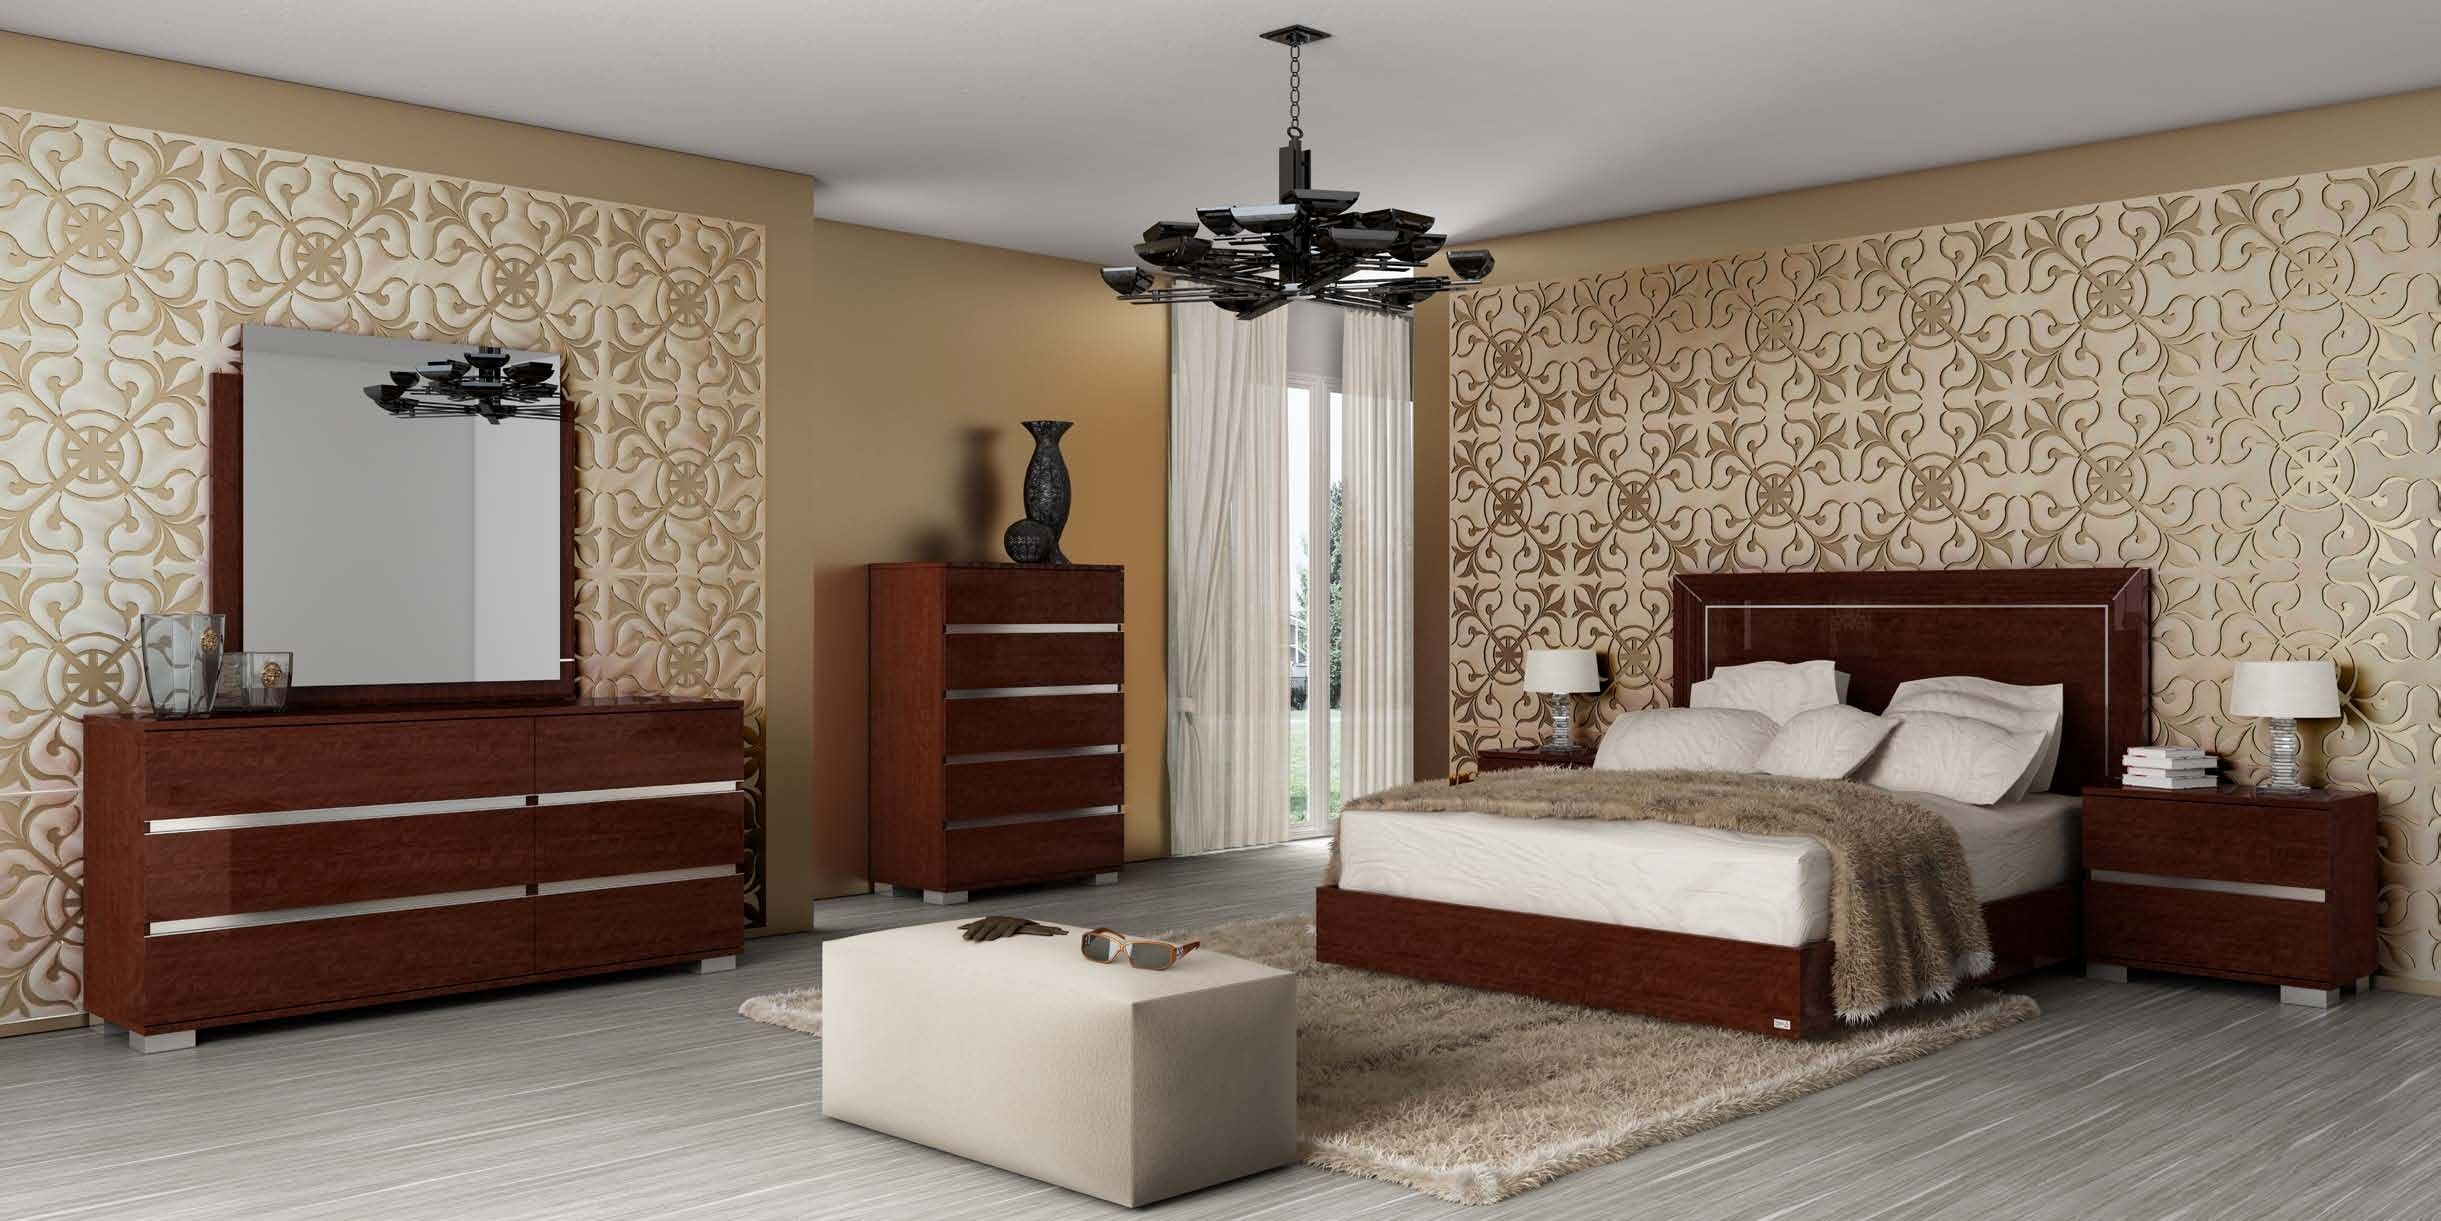 Live Platform Bedroom Set in Walnut Lacquer by Status